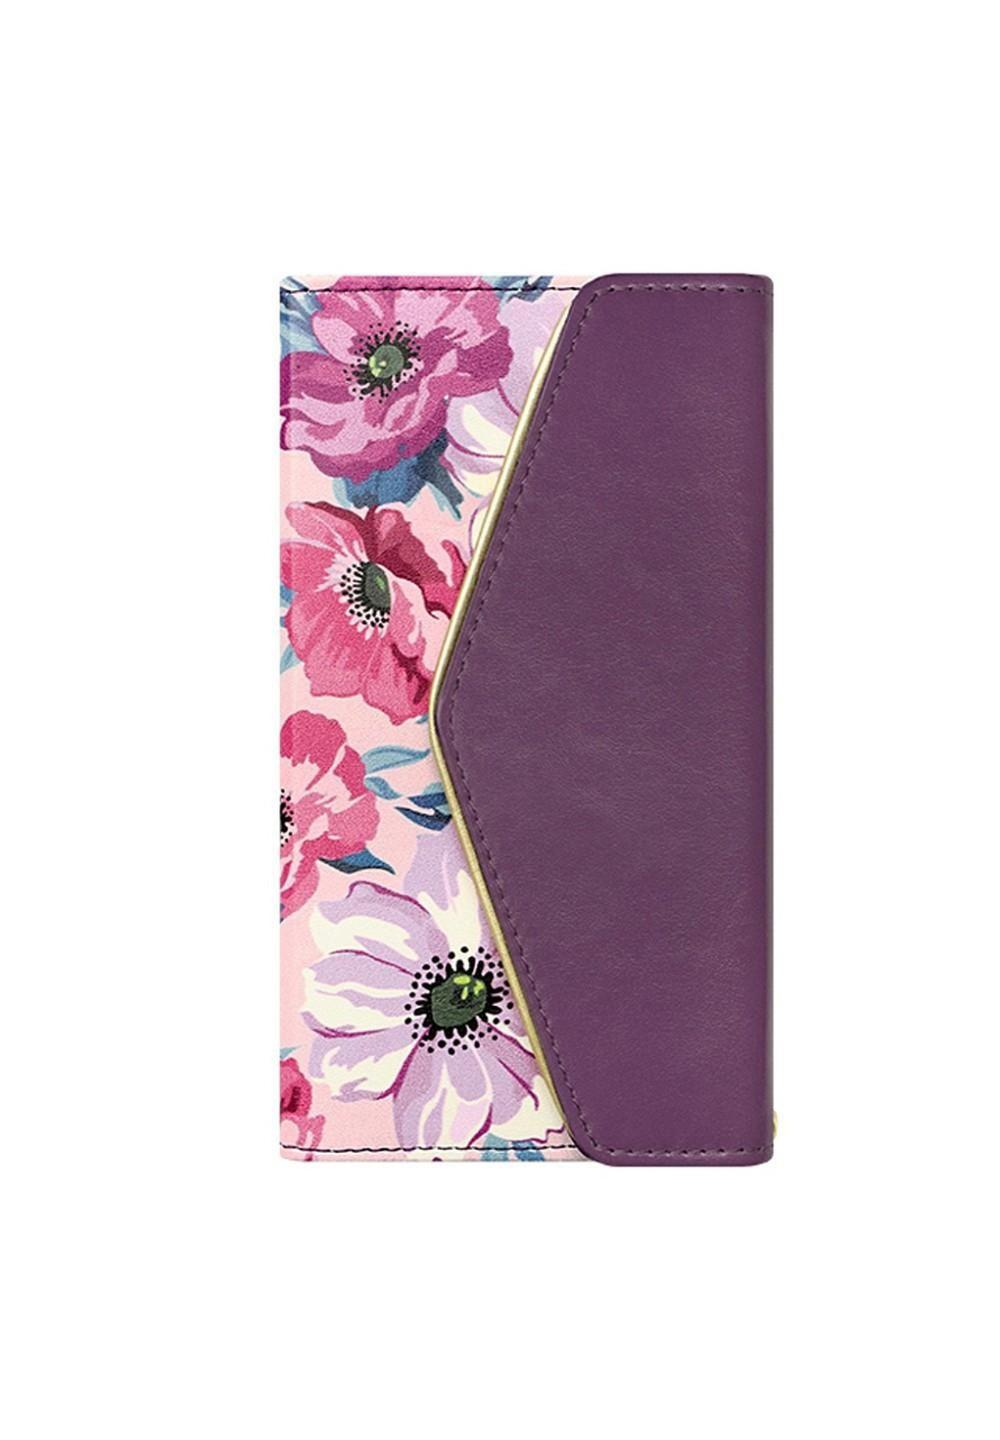 UNiCASE BLUE LABEL / Flower Series mirror case for iPhoneX(Purple Anemone) - #1